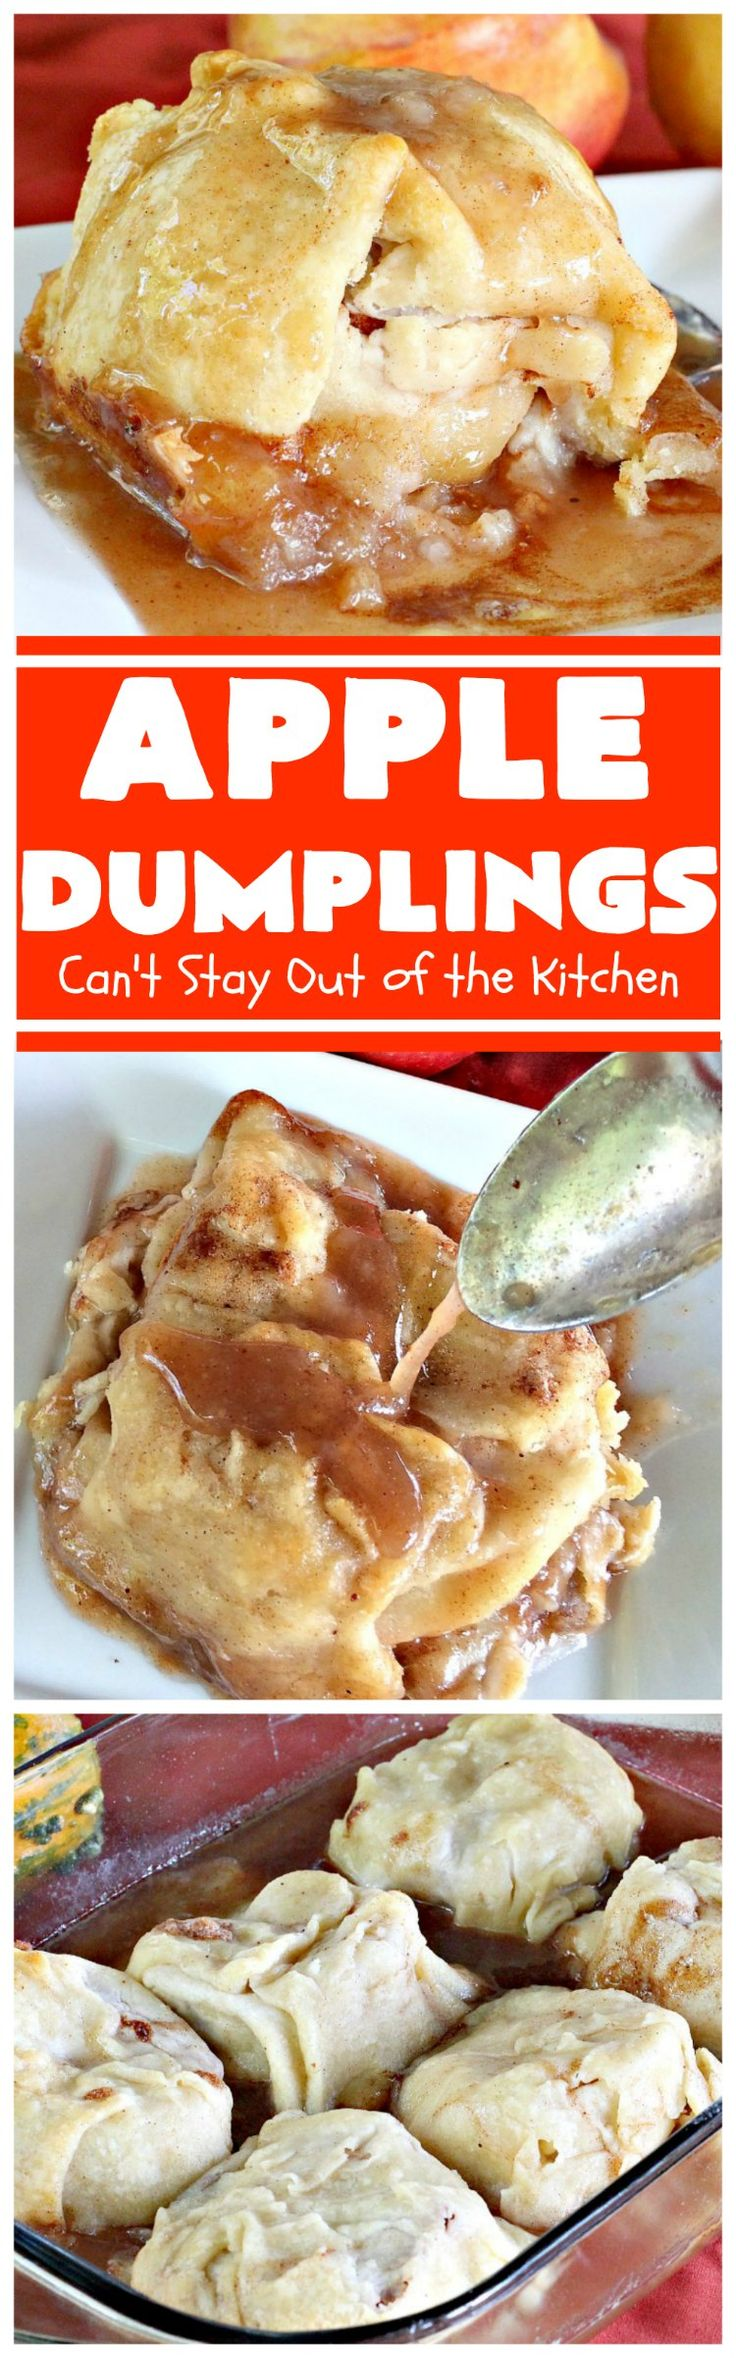 Apple Dumplings | Can't Stay Out of the Kitchen | this is my favorite #dessert. It's absolutely melt-in-your-mouth delicious. #apples are filled with #cinnamon-sugar, rolled in pie crust & glazed with a cinnamon-sugar syrup. Terrific dessert for company or #holidays. (pinned 9.93k)